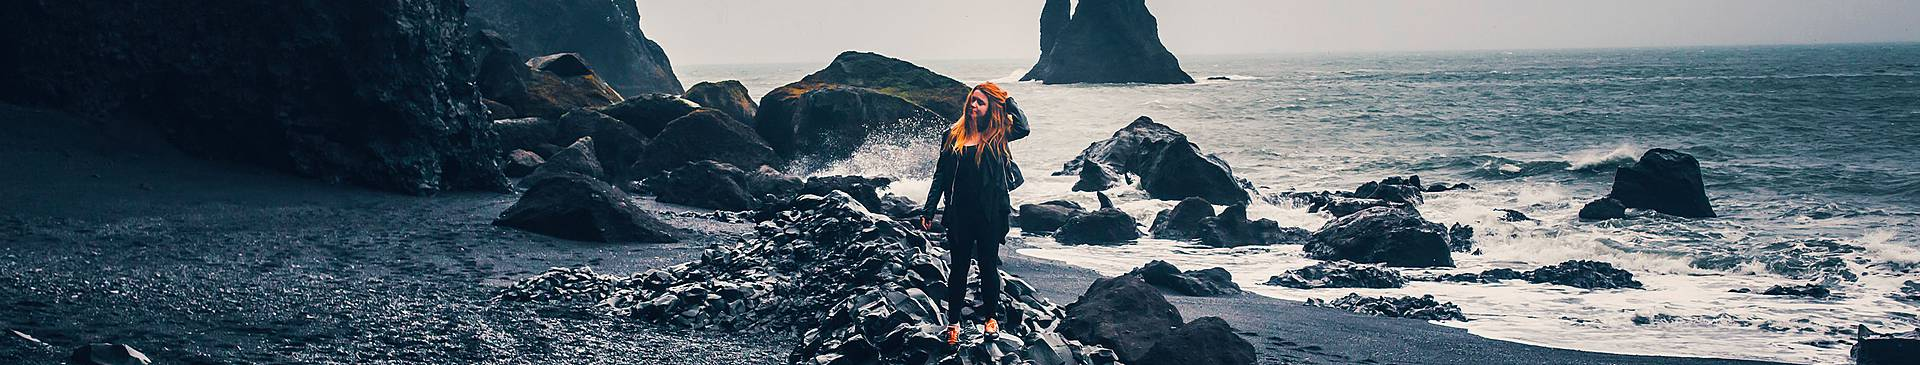 Beaches in Iceland